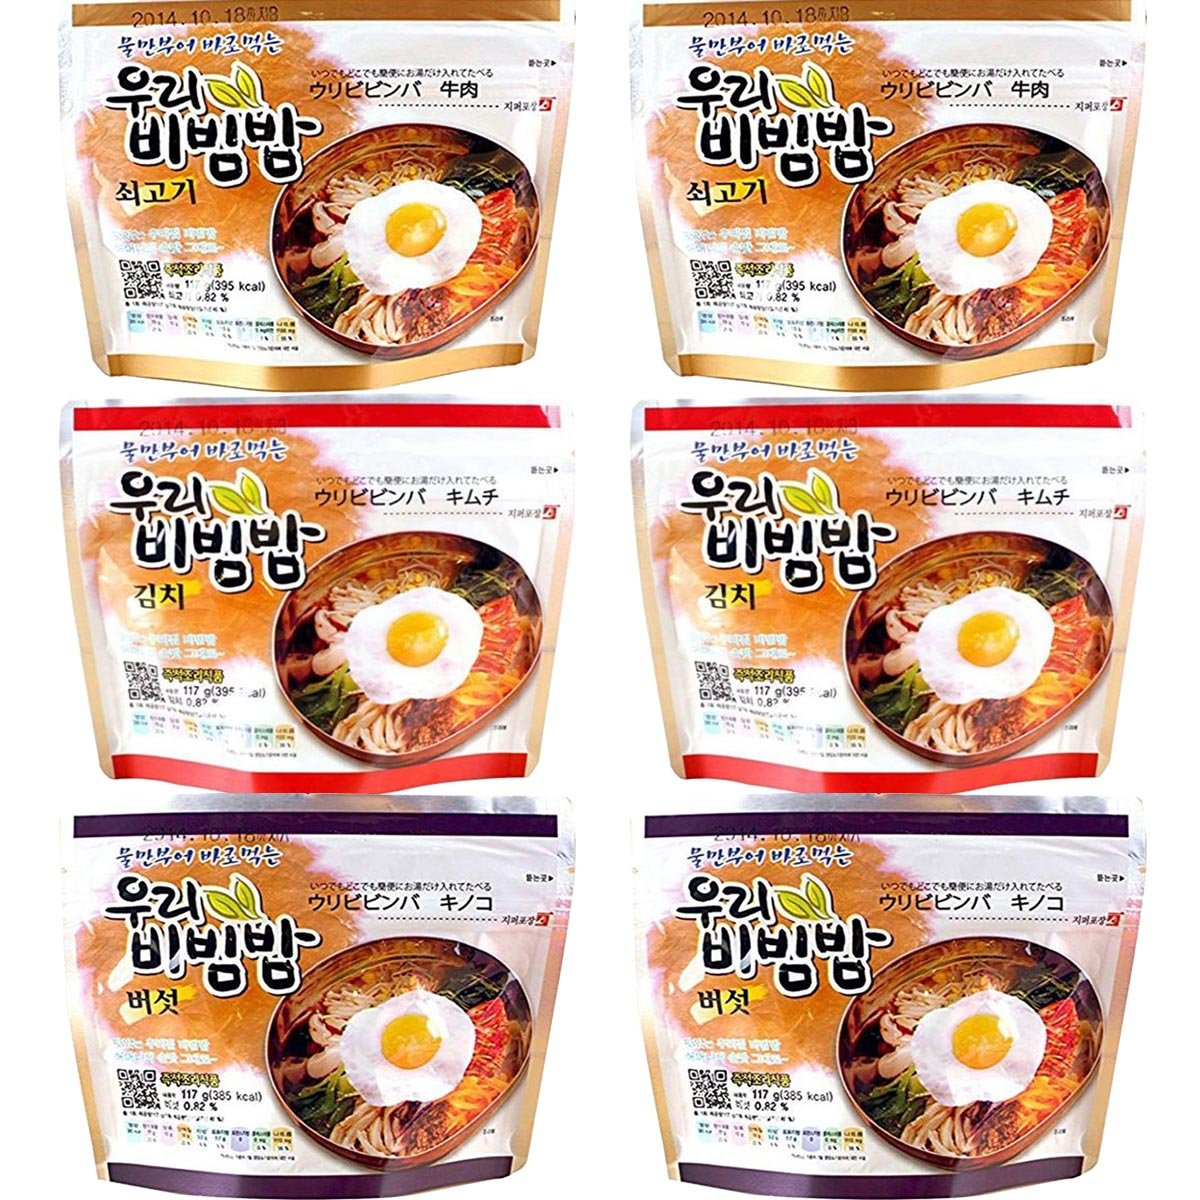 MRE Meals Woori's Ready to Eat BEEF / KIMCHI / MUSHROOM Bibimbap Korean Mixed Rice Bowl 100g (3.53oz) 335 Kcal Instant Rice Emergency Rice Food (BEEF / KIMCHI / MUSHROOM, TOTAL 6 PACK (EACH 2 PACK))